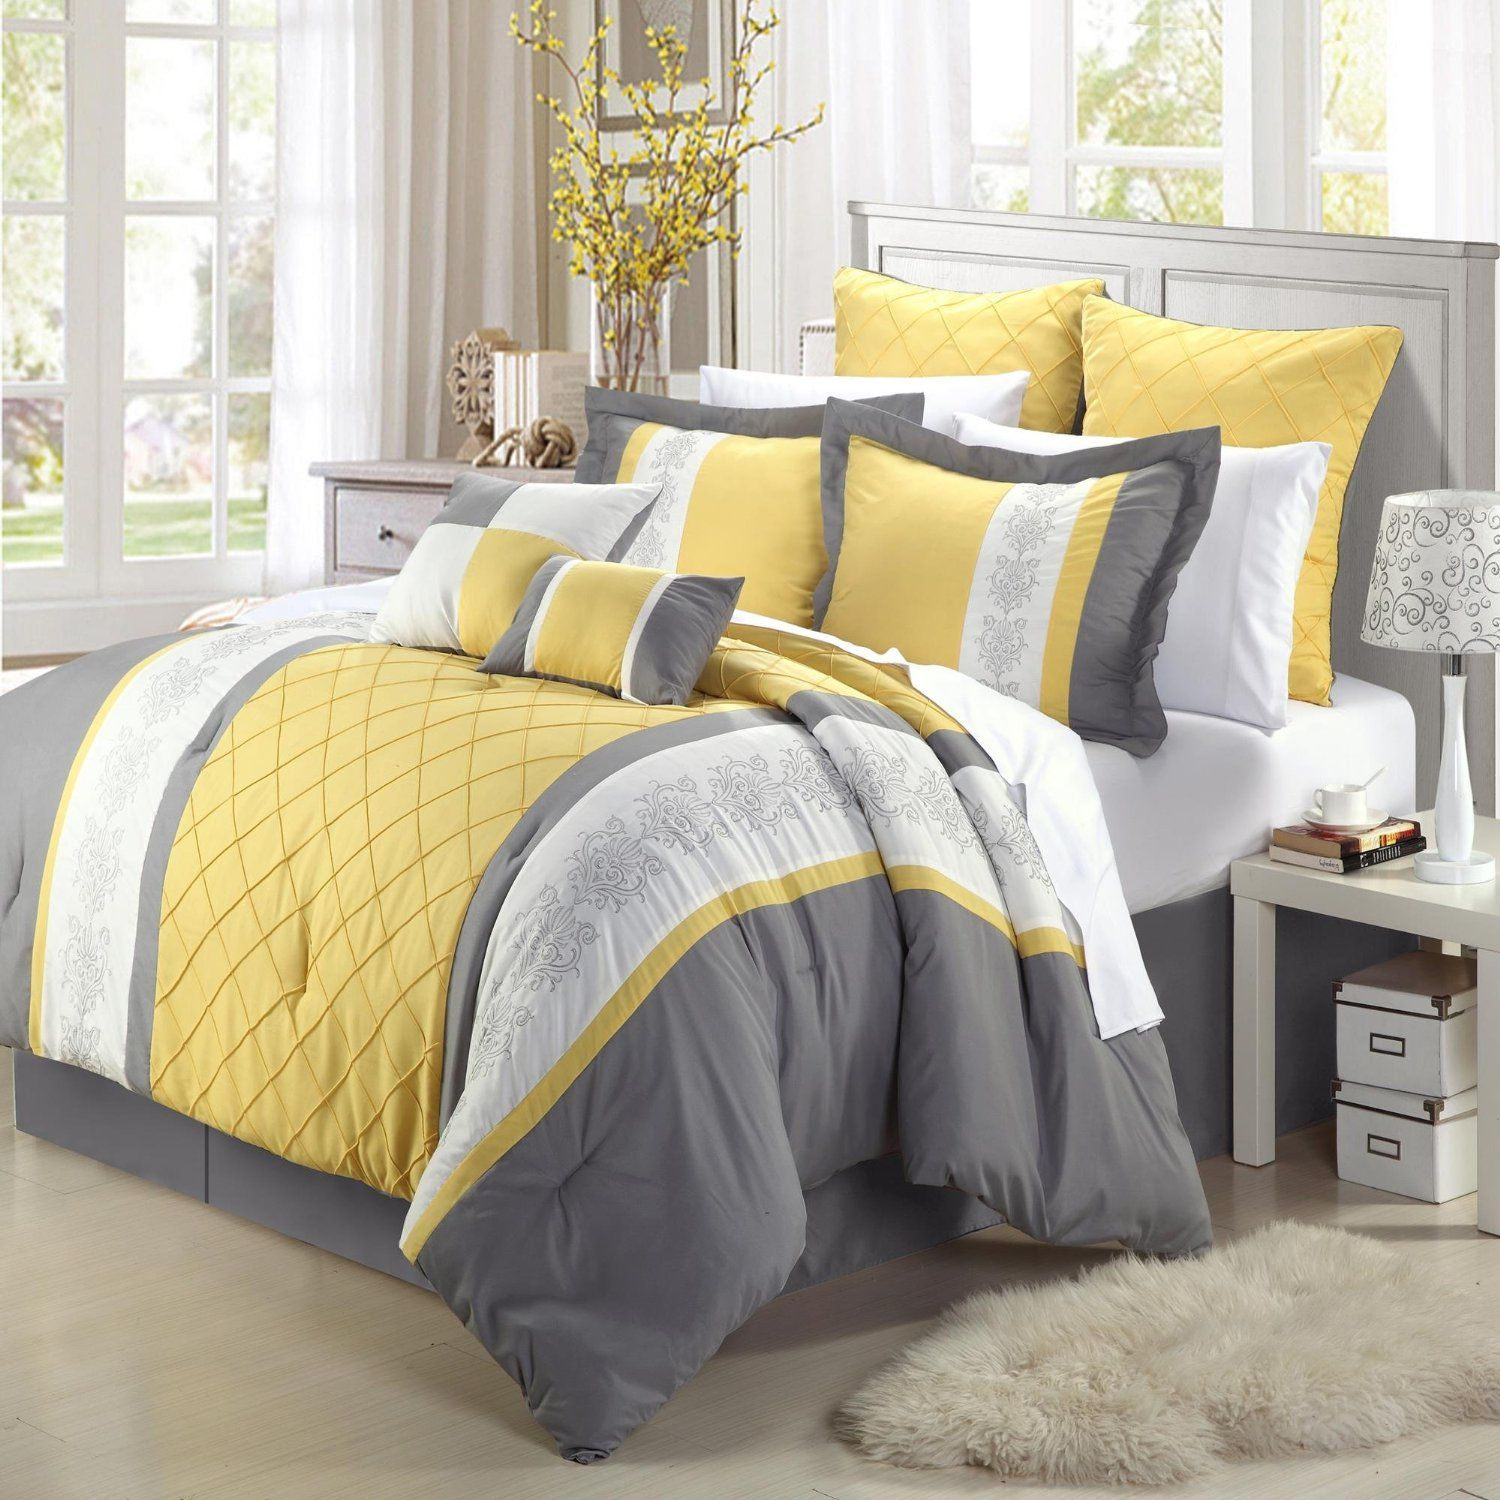 house gray set grey bed comforter exotic my and ebay aqua yellow blue teal bedding bohemian decorate green